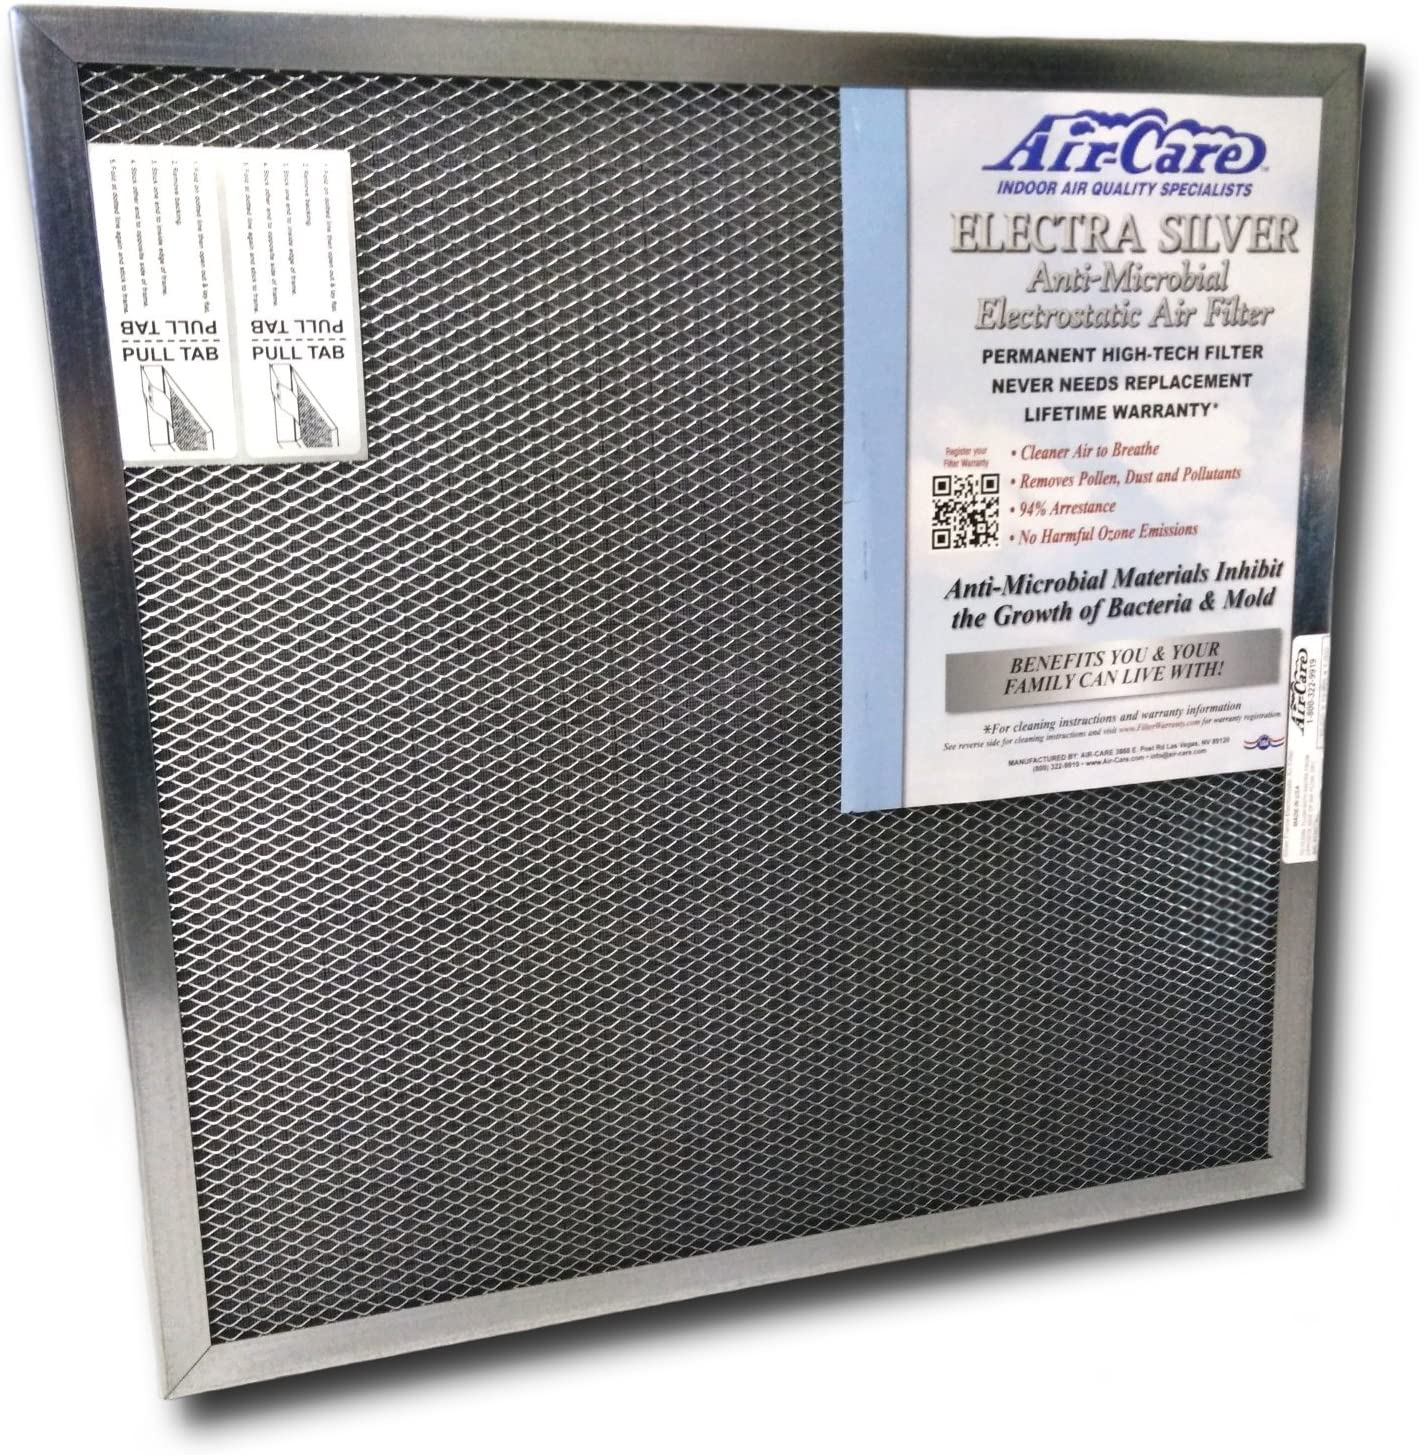 19-7/8 x 21-1/2 x 1 Electrostatic Washable Permanent A/C Furnace Air Filter 19-7/8x21-1/2x1